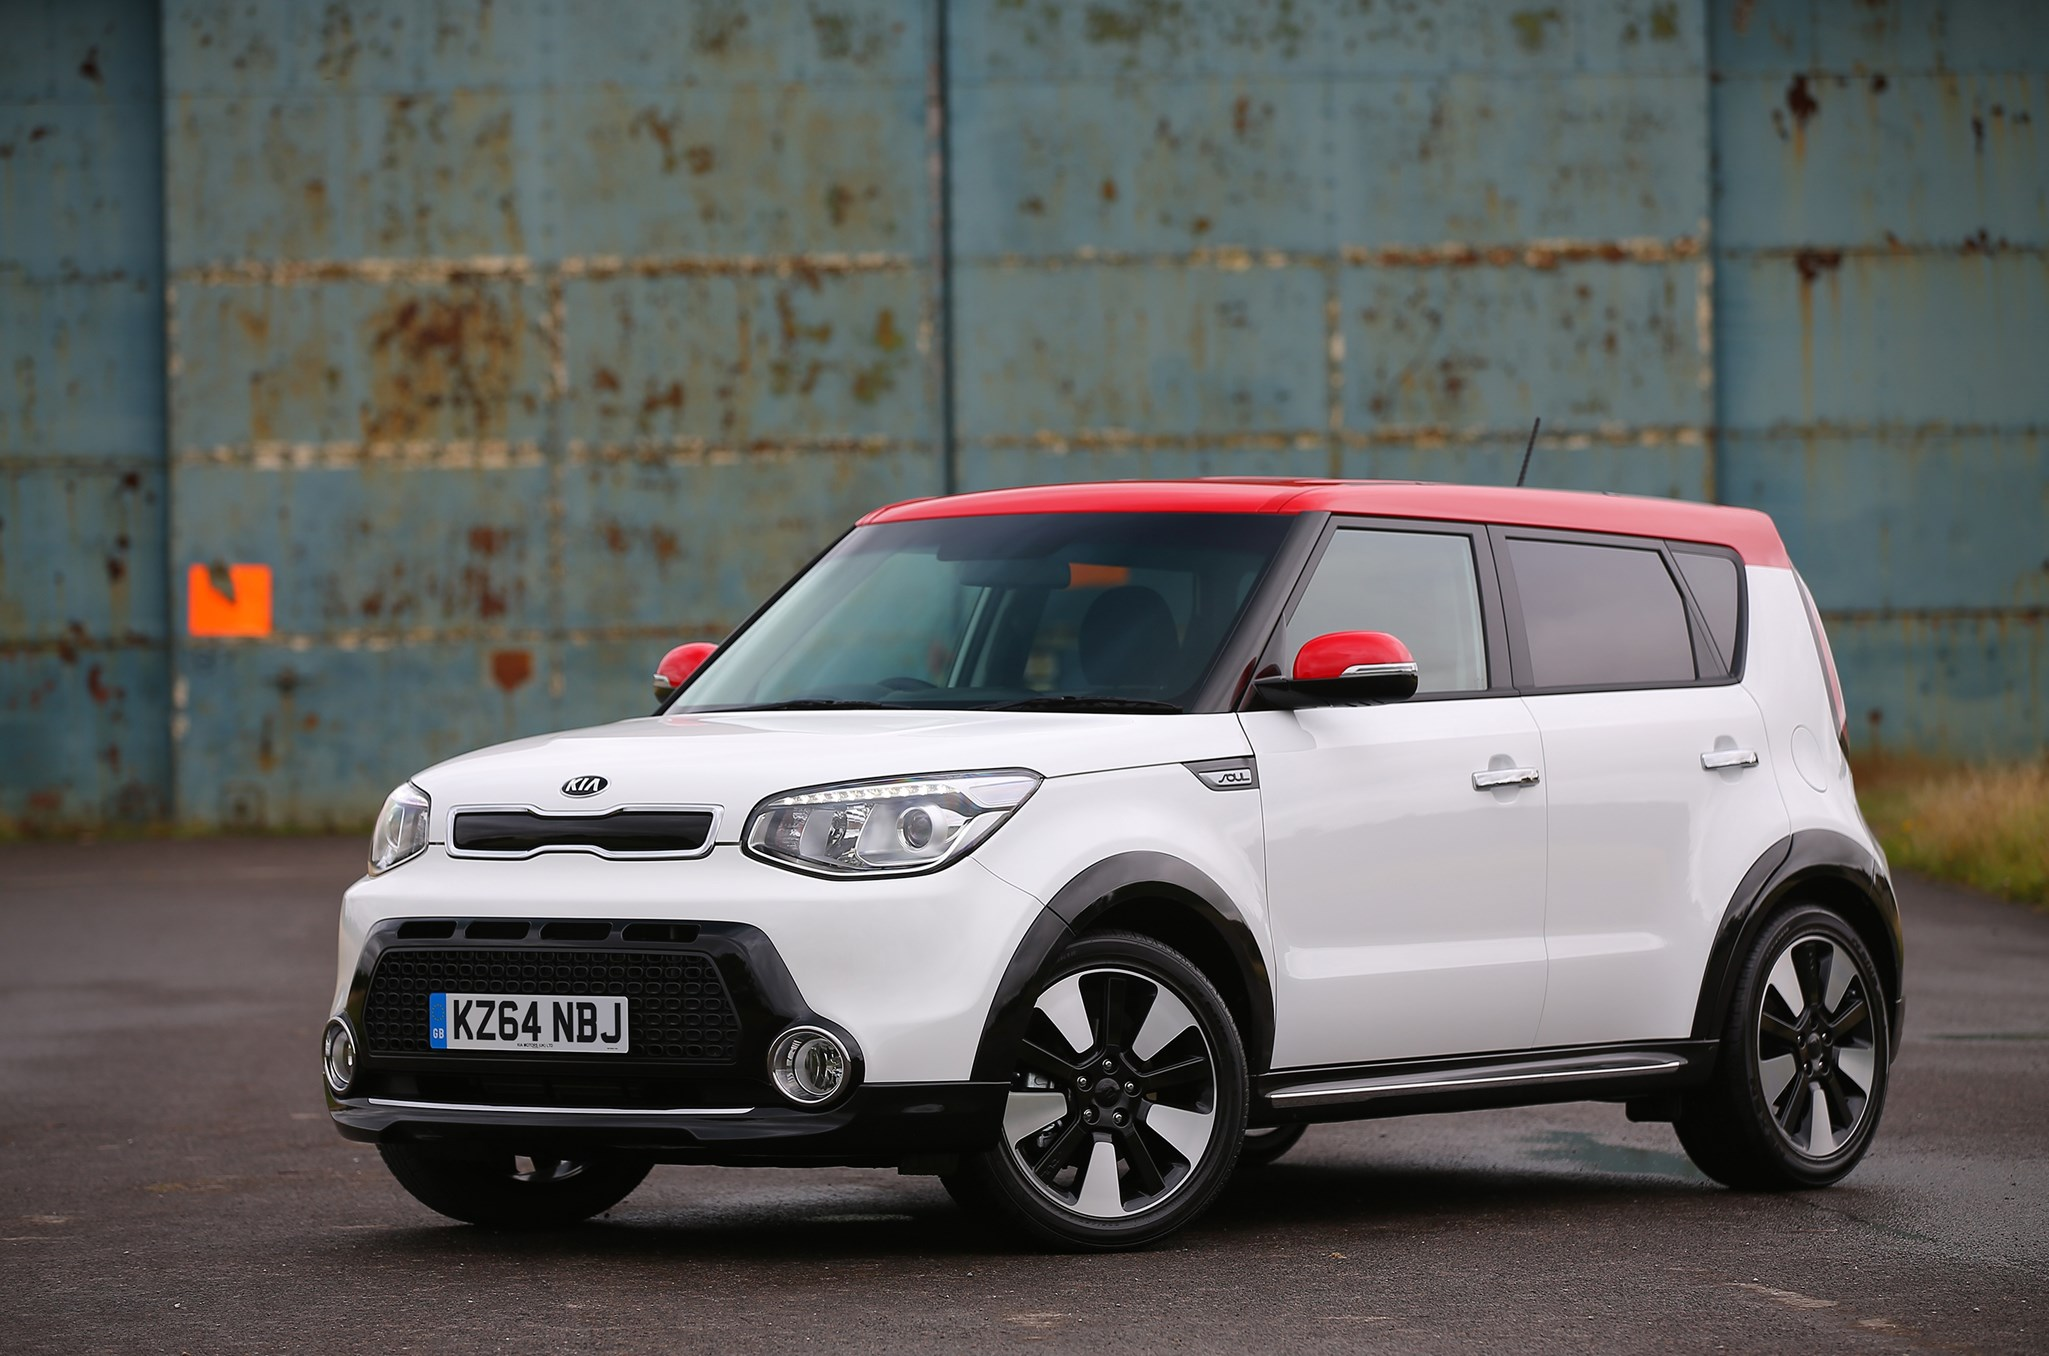 Kia Soul Information: Everything You Need To Know If You Own It, Are  Thinking Of Buying One Or Just Want To Find Out More About The Mini MPV.